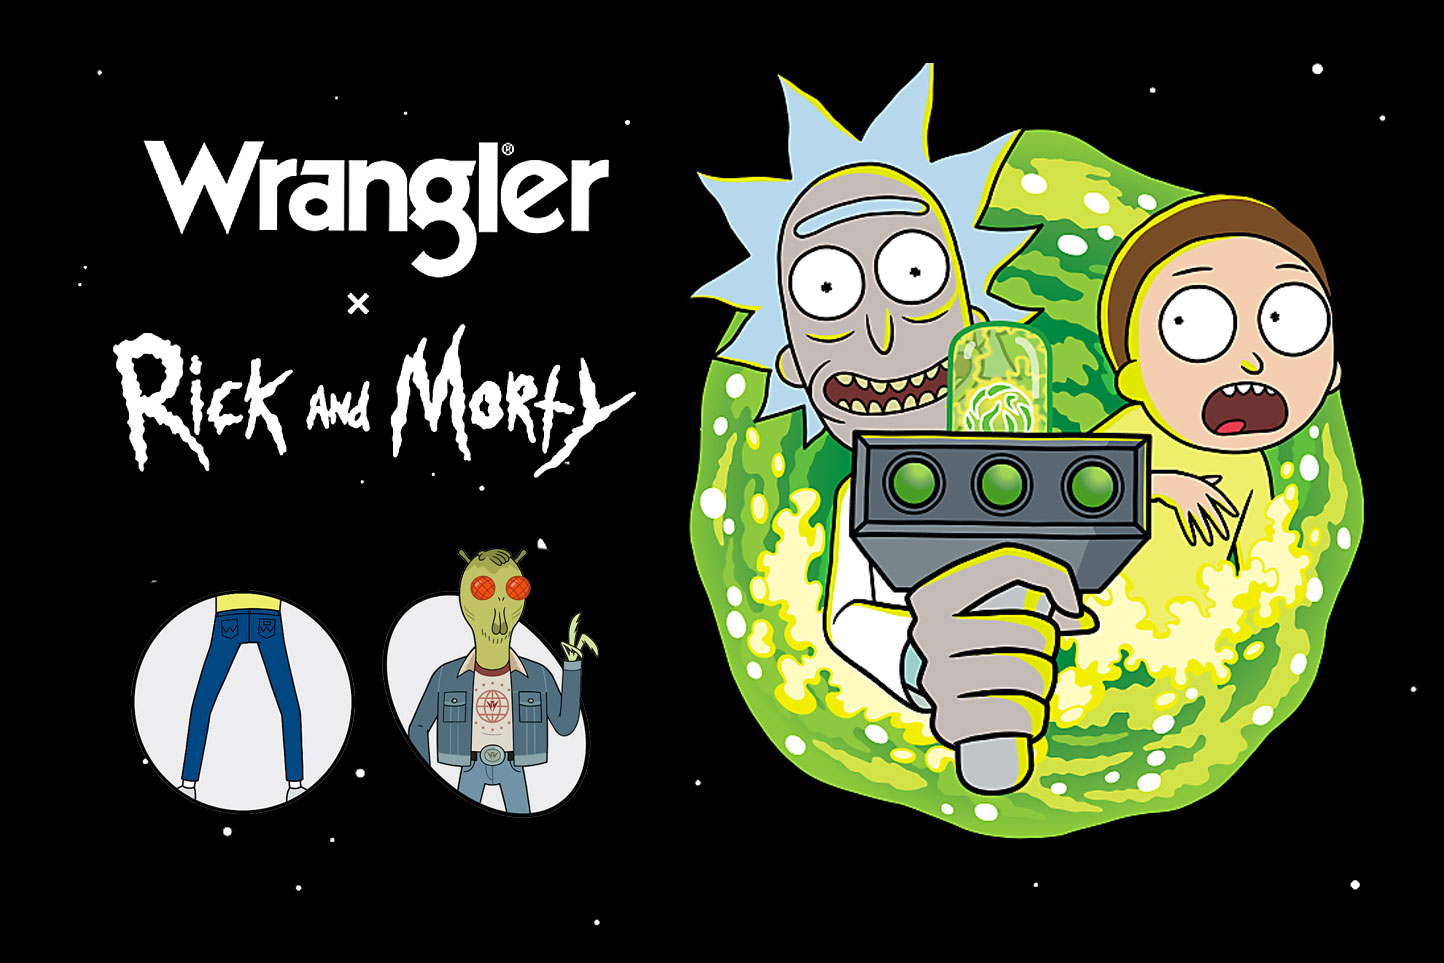 Wrangler teams up with 'Rick and Morty' for new clothing line